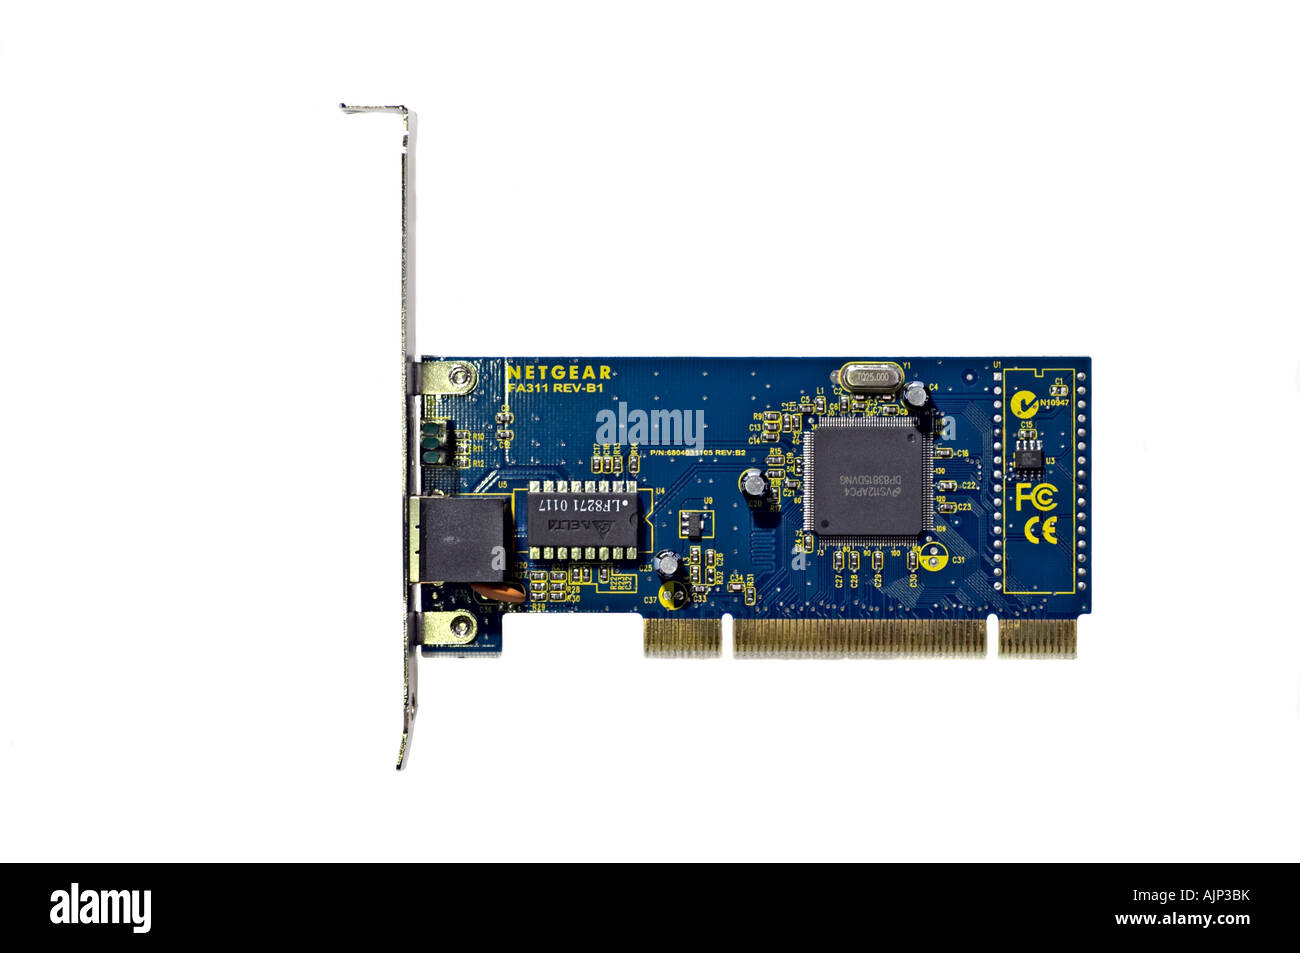 Ethernet Network Interface Card